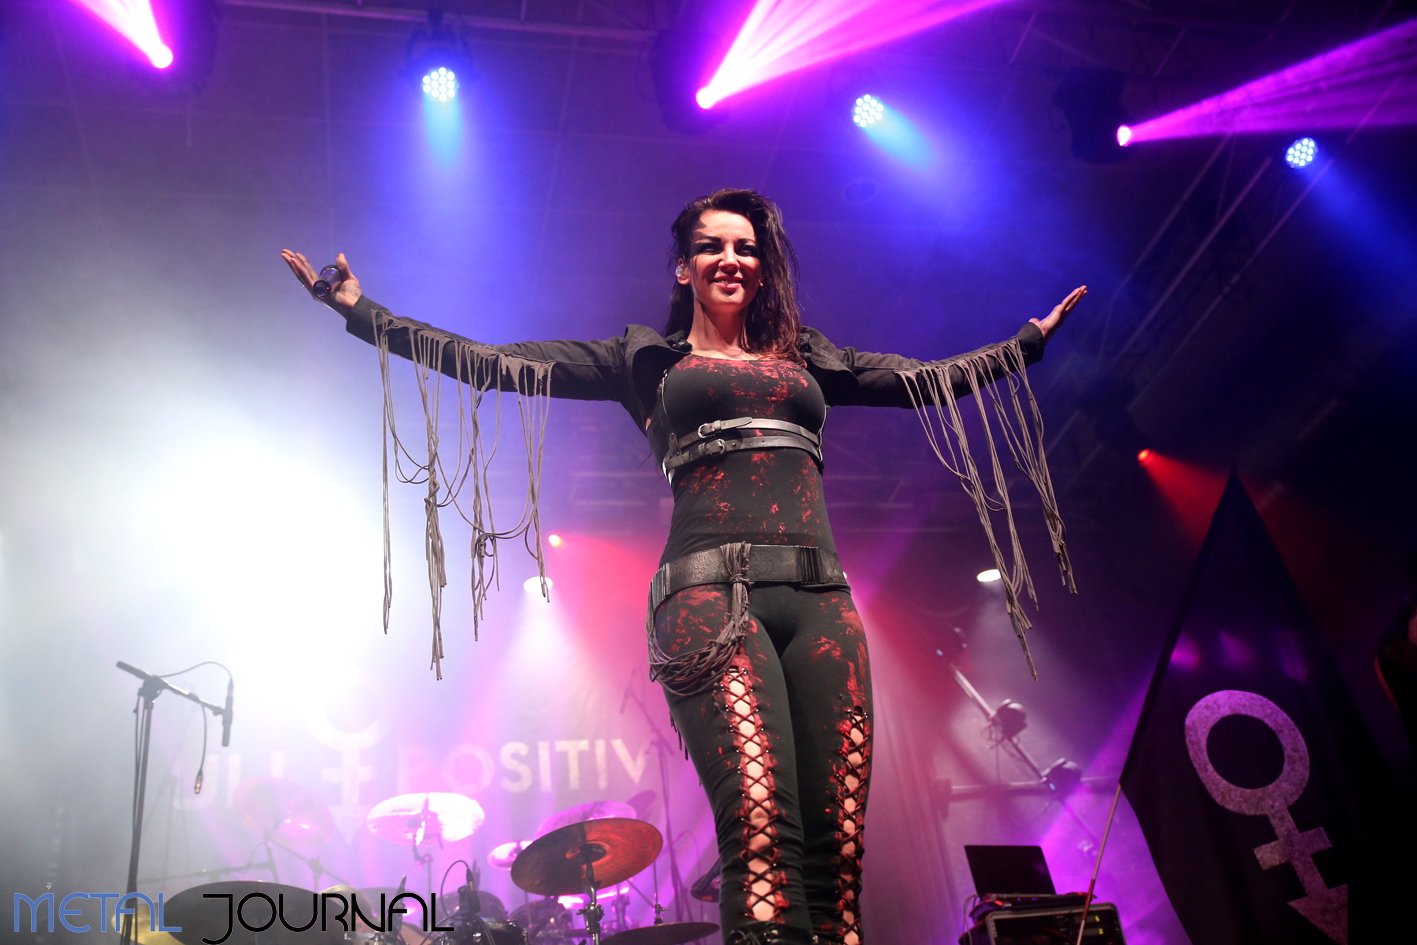 null positiv - metal journal bilbao 2018 pic 8